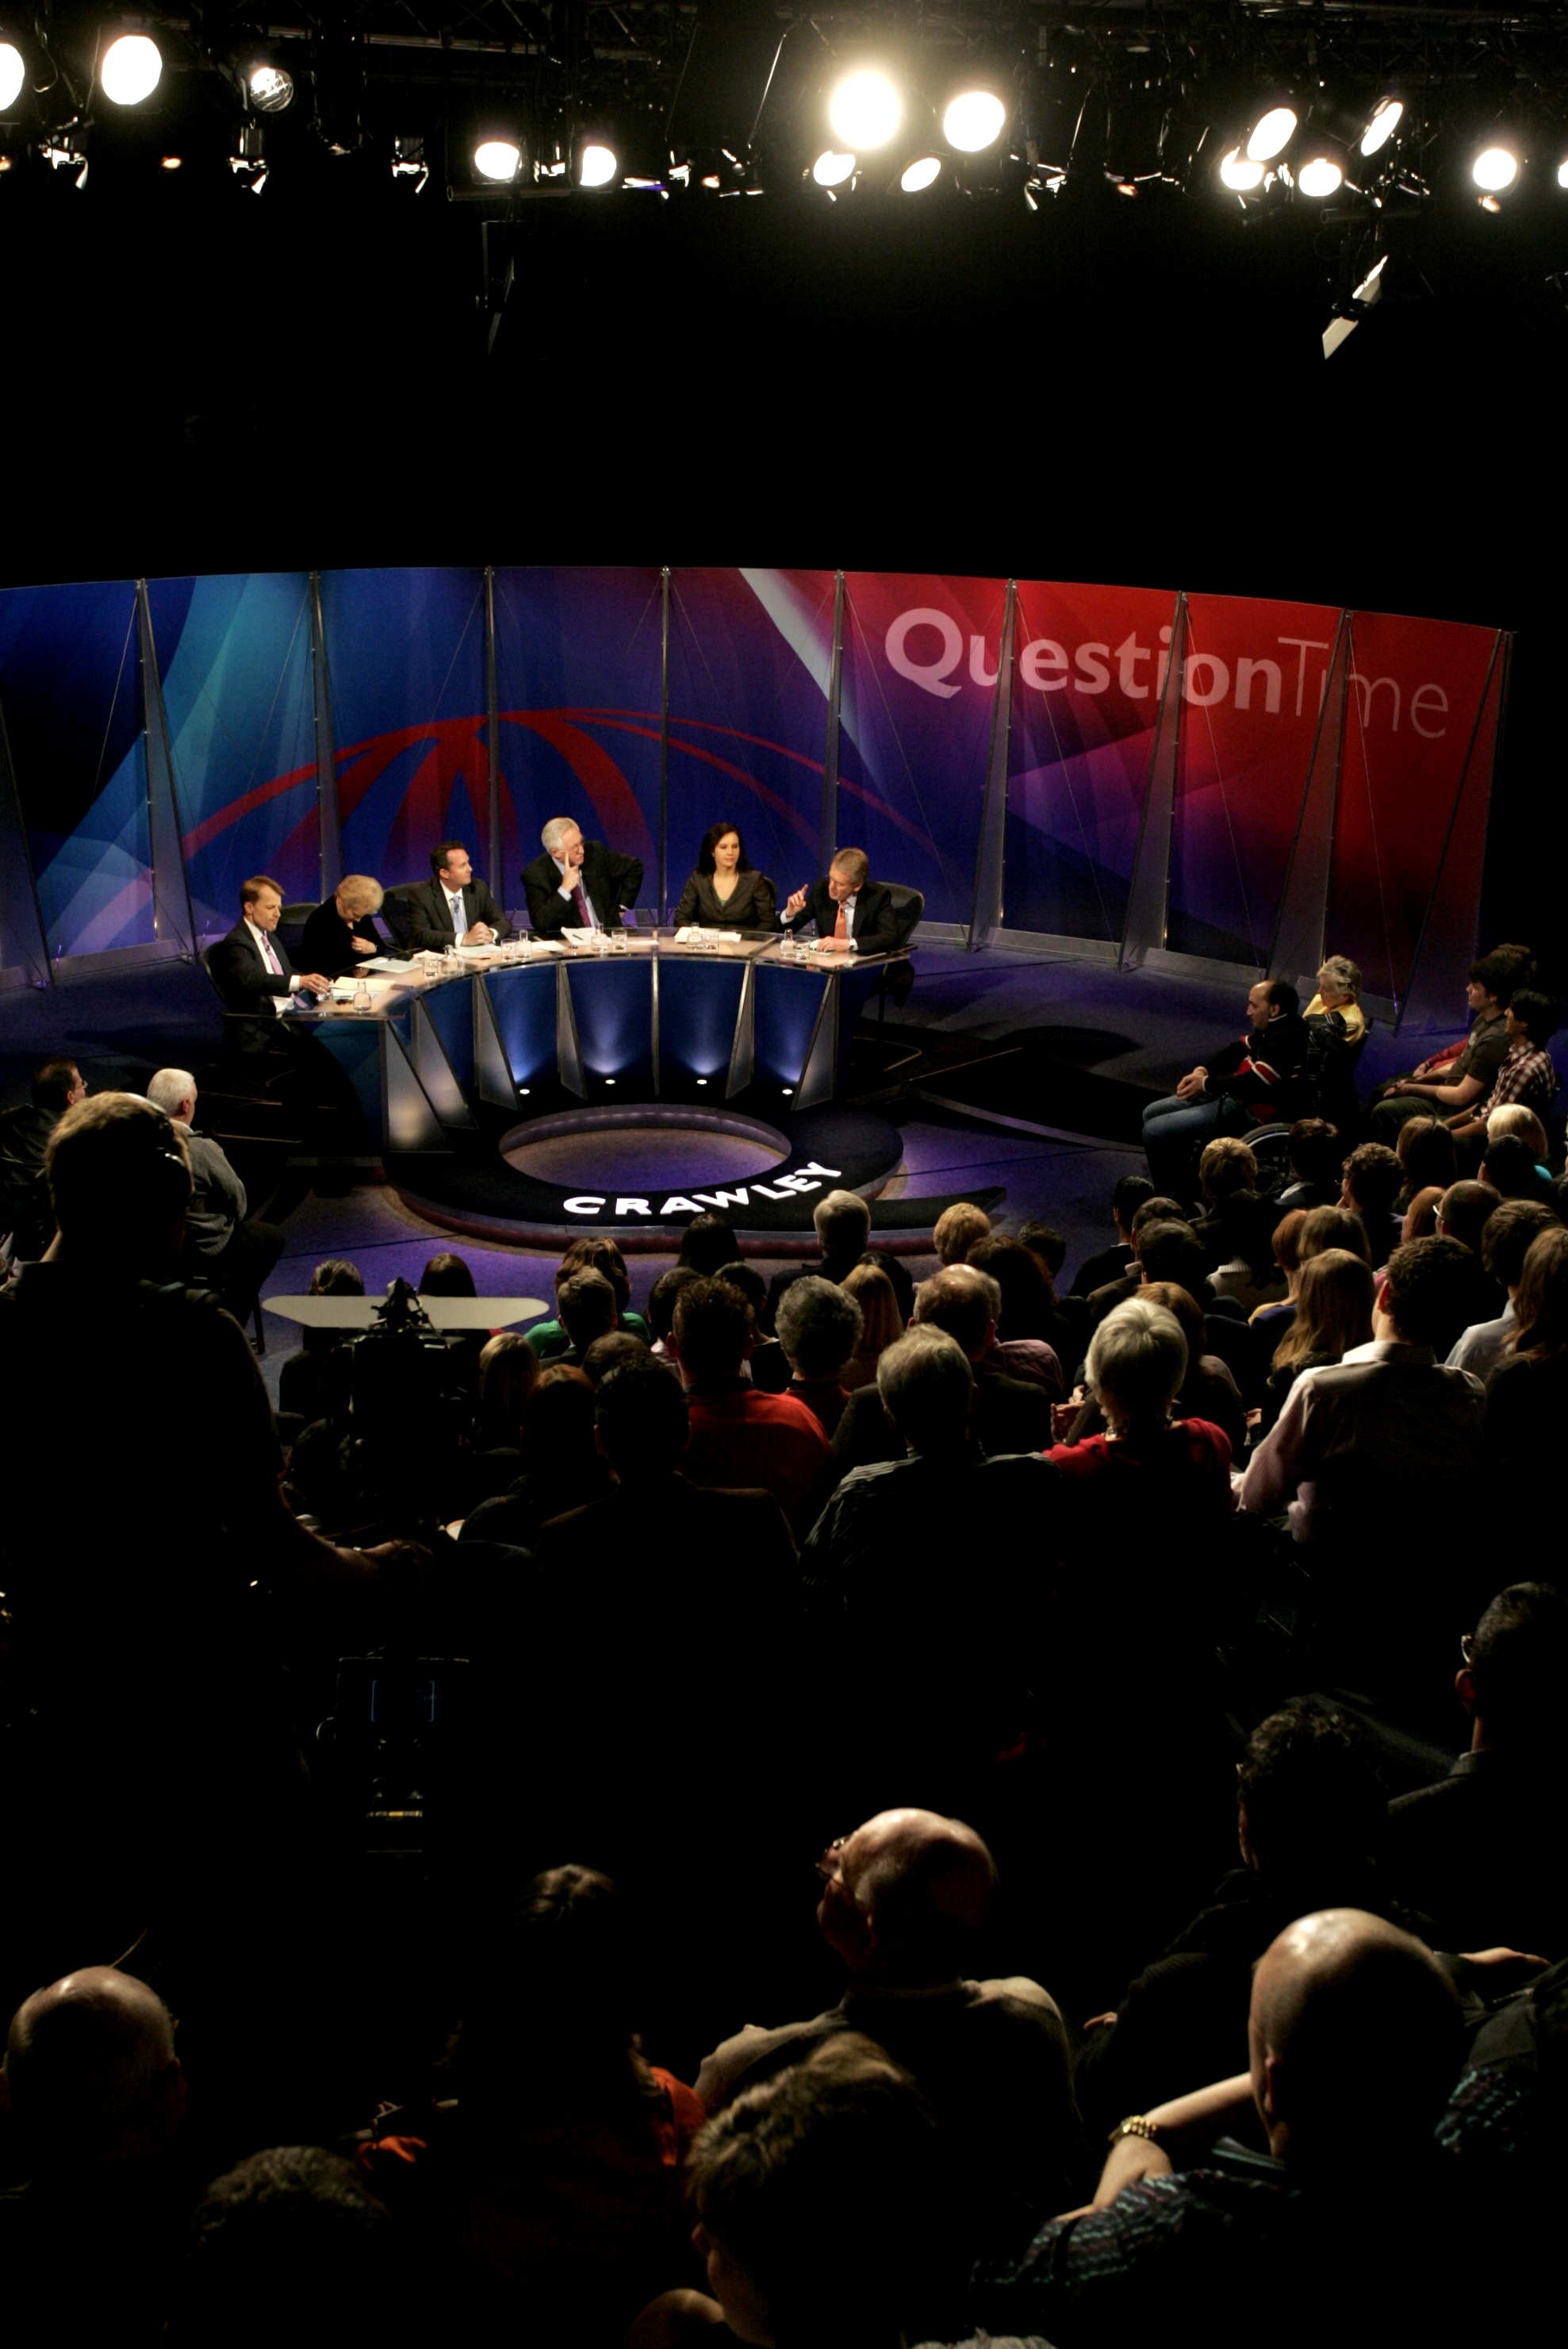 Tonight's Question Time comes from Brighton